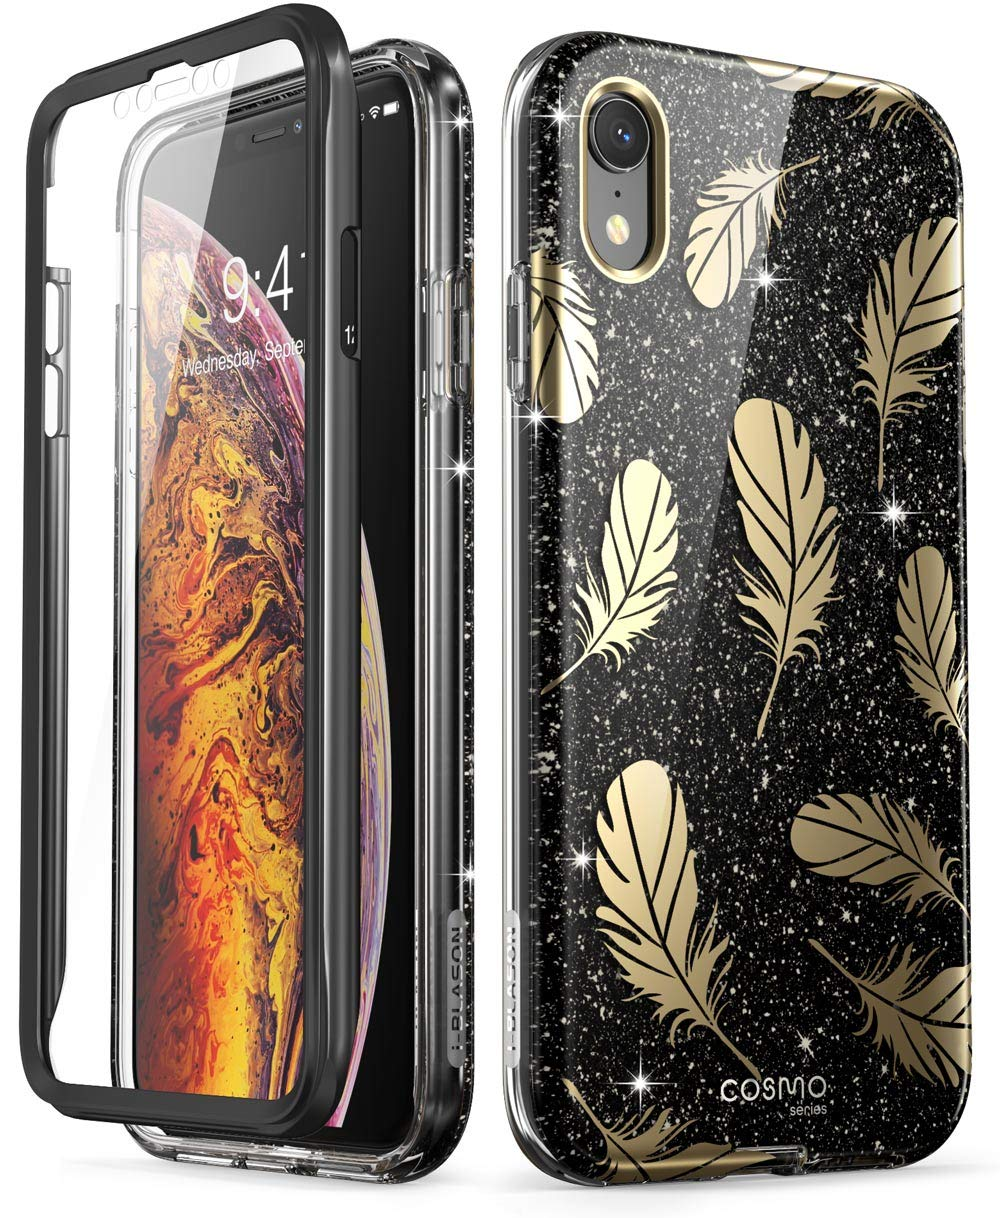 iPhone XR Case, [Built-in Screen Protector] i-Blason [Cosmo] Full-Body Glitter Bumper Case for iPhone XR 6.1 Inch 2018 Release - 81Cv2o15aHL - iPhone XR Case, [Built-in Screen Protector] i-Blason [Cosmo] Full-Body Glitter Bumper Case for iPhone XR 6.1 Inch 2018 Release